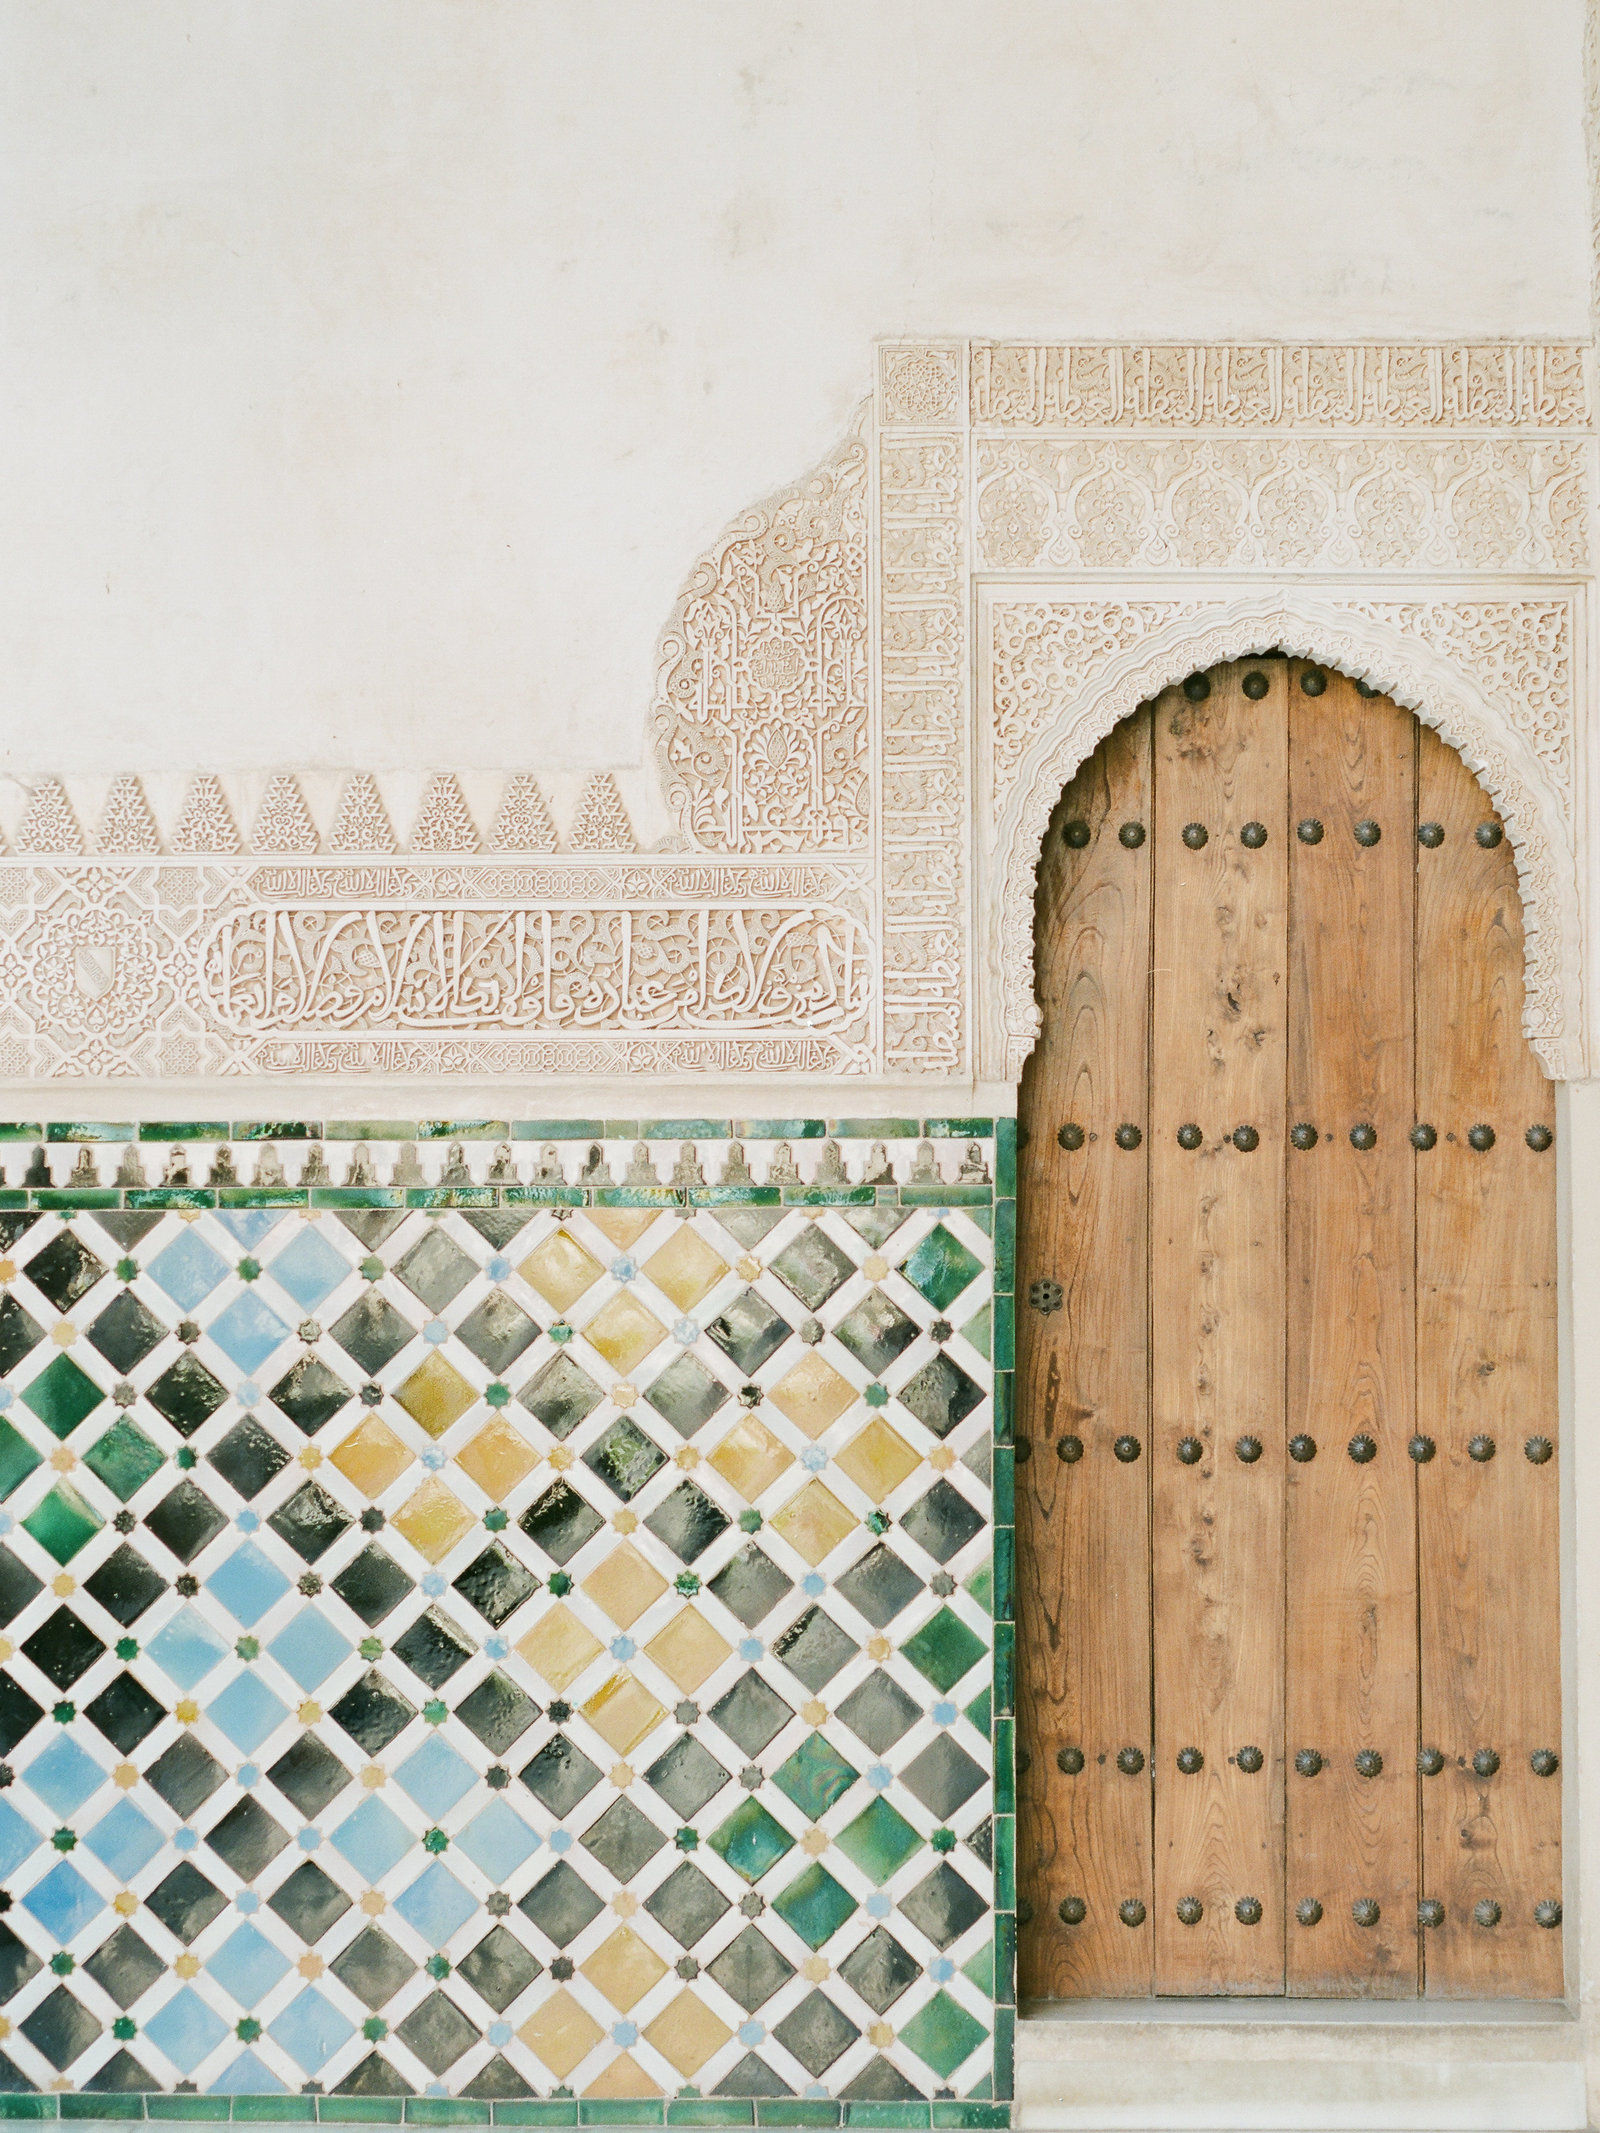 alhambra-colorful-tiles-photo